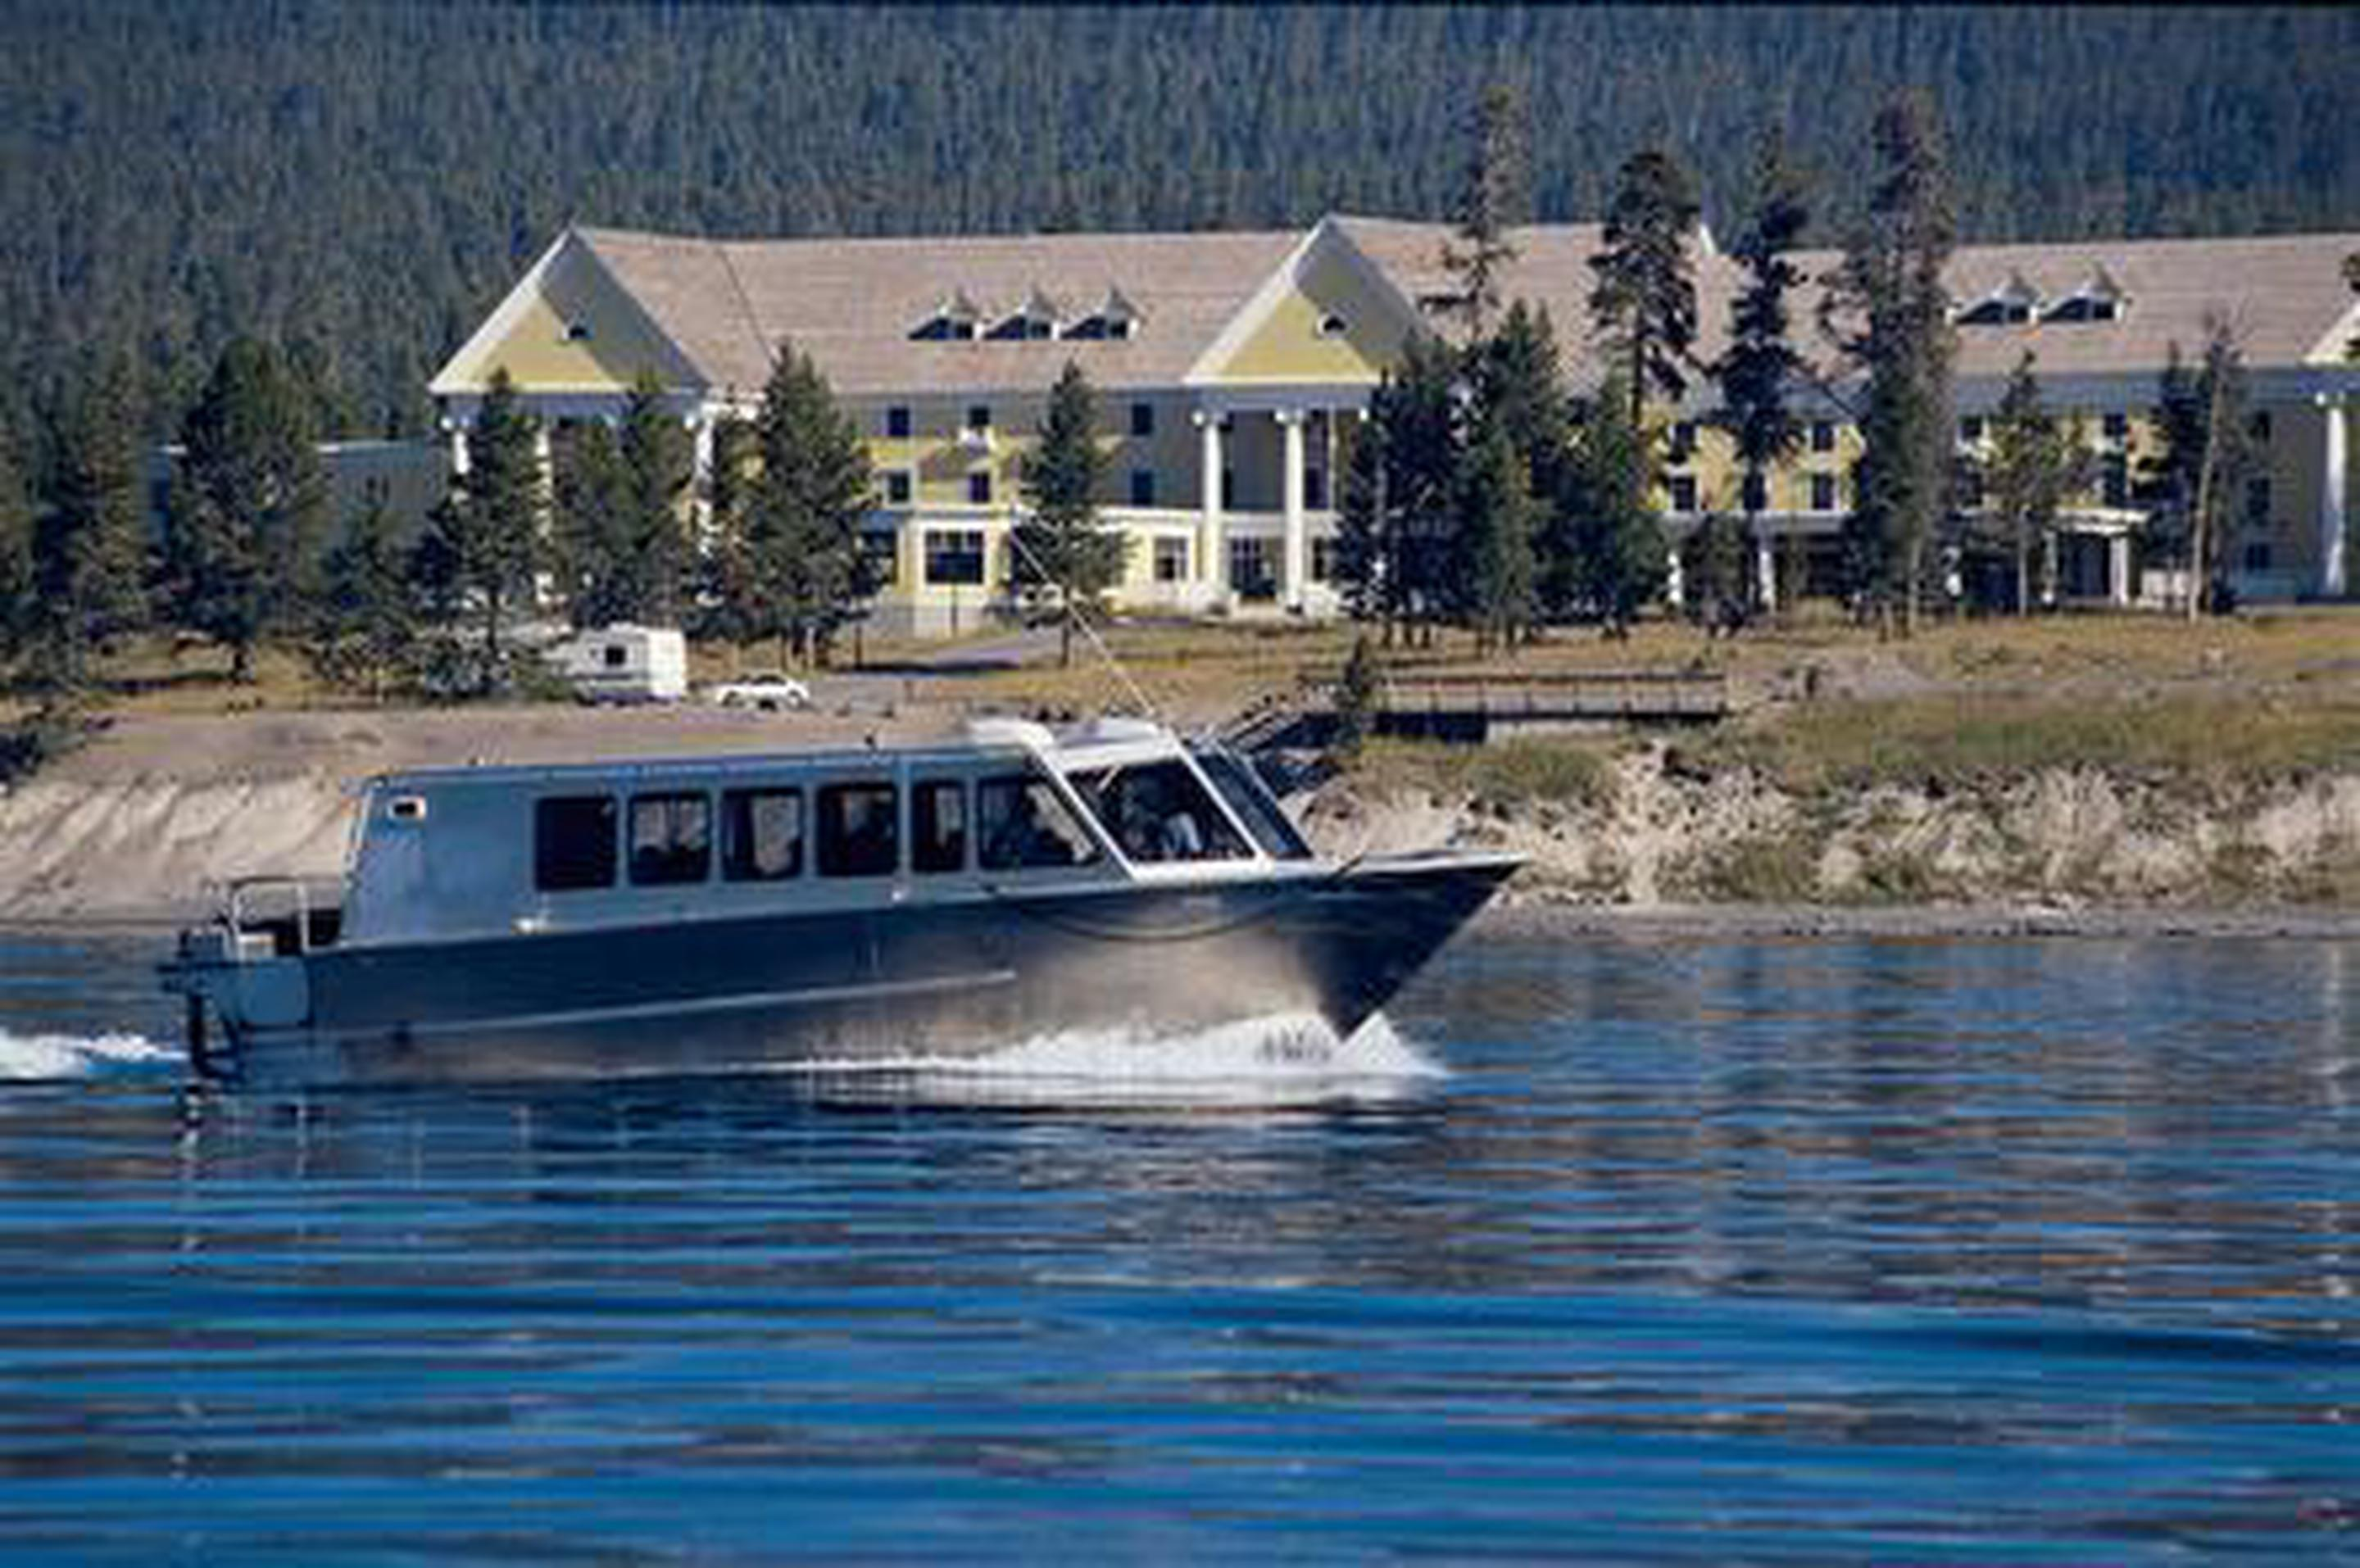 Scenic Cruise If renting a boat isn't your speed, the Yellowstone Lake Scenicruise offers a one hour tour of the lake's history and natural flora and fauna.